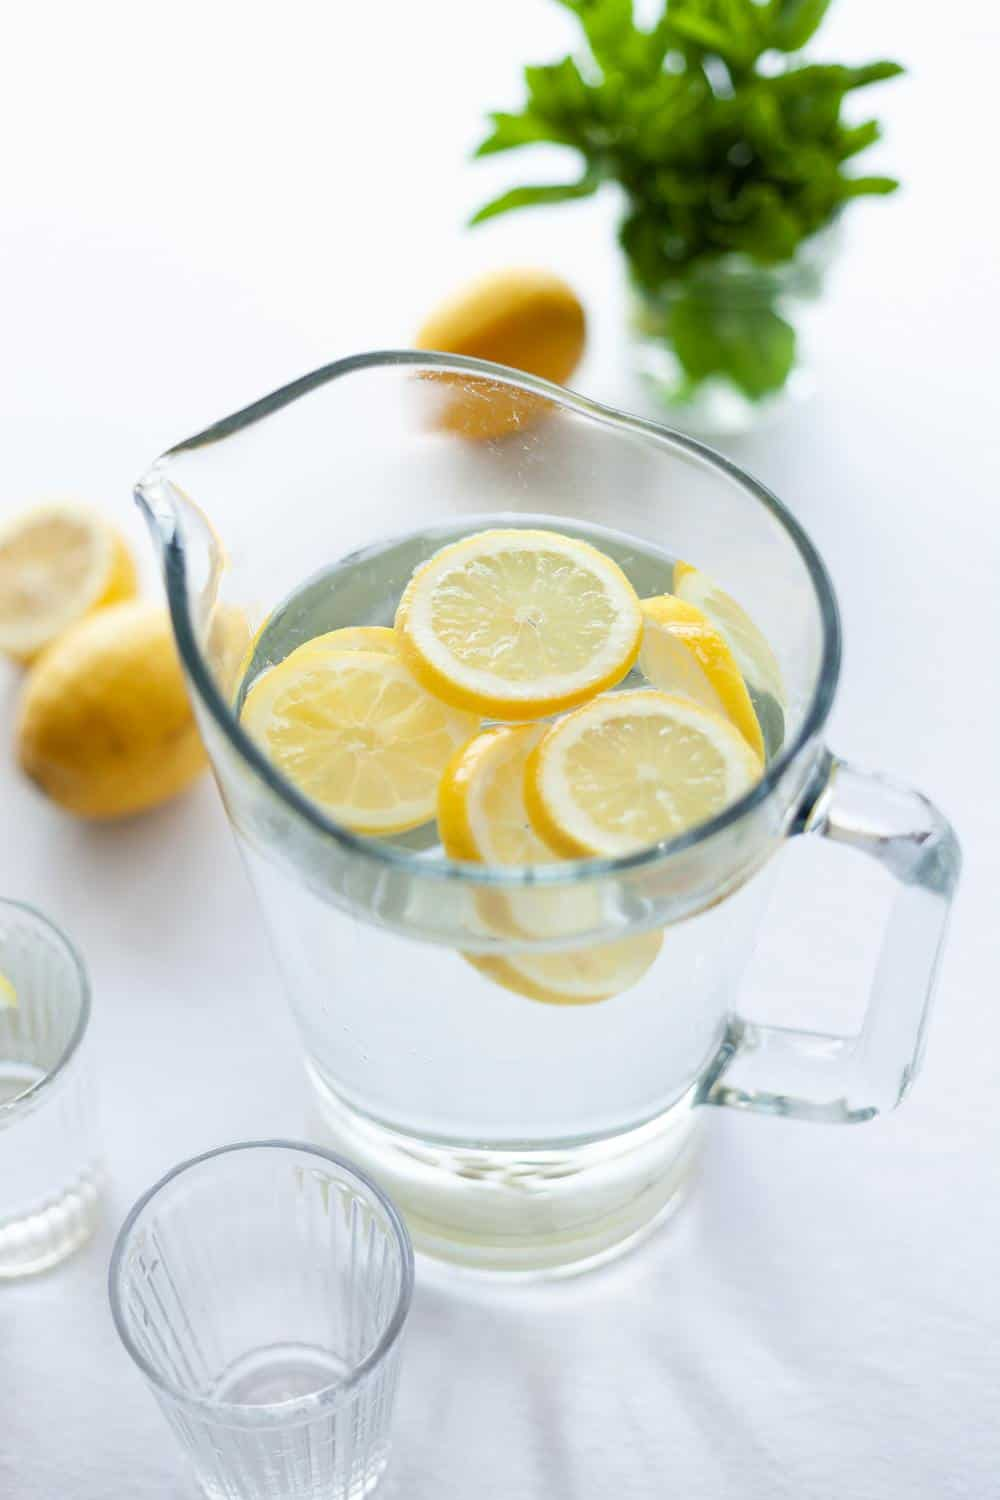 lots of fluids - what to eat when you're sick